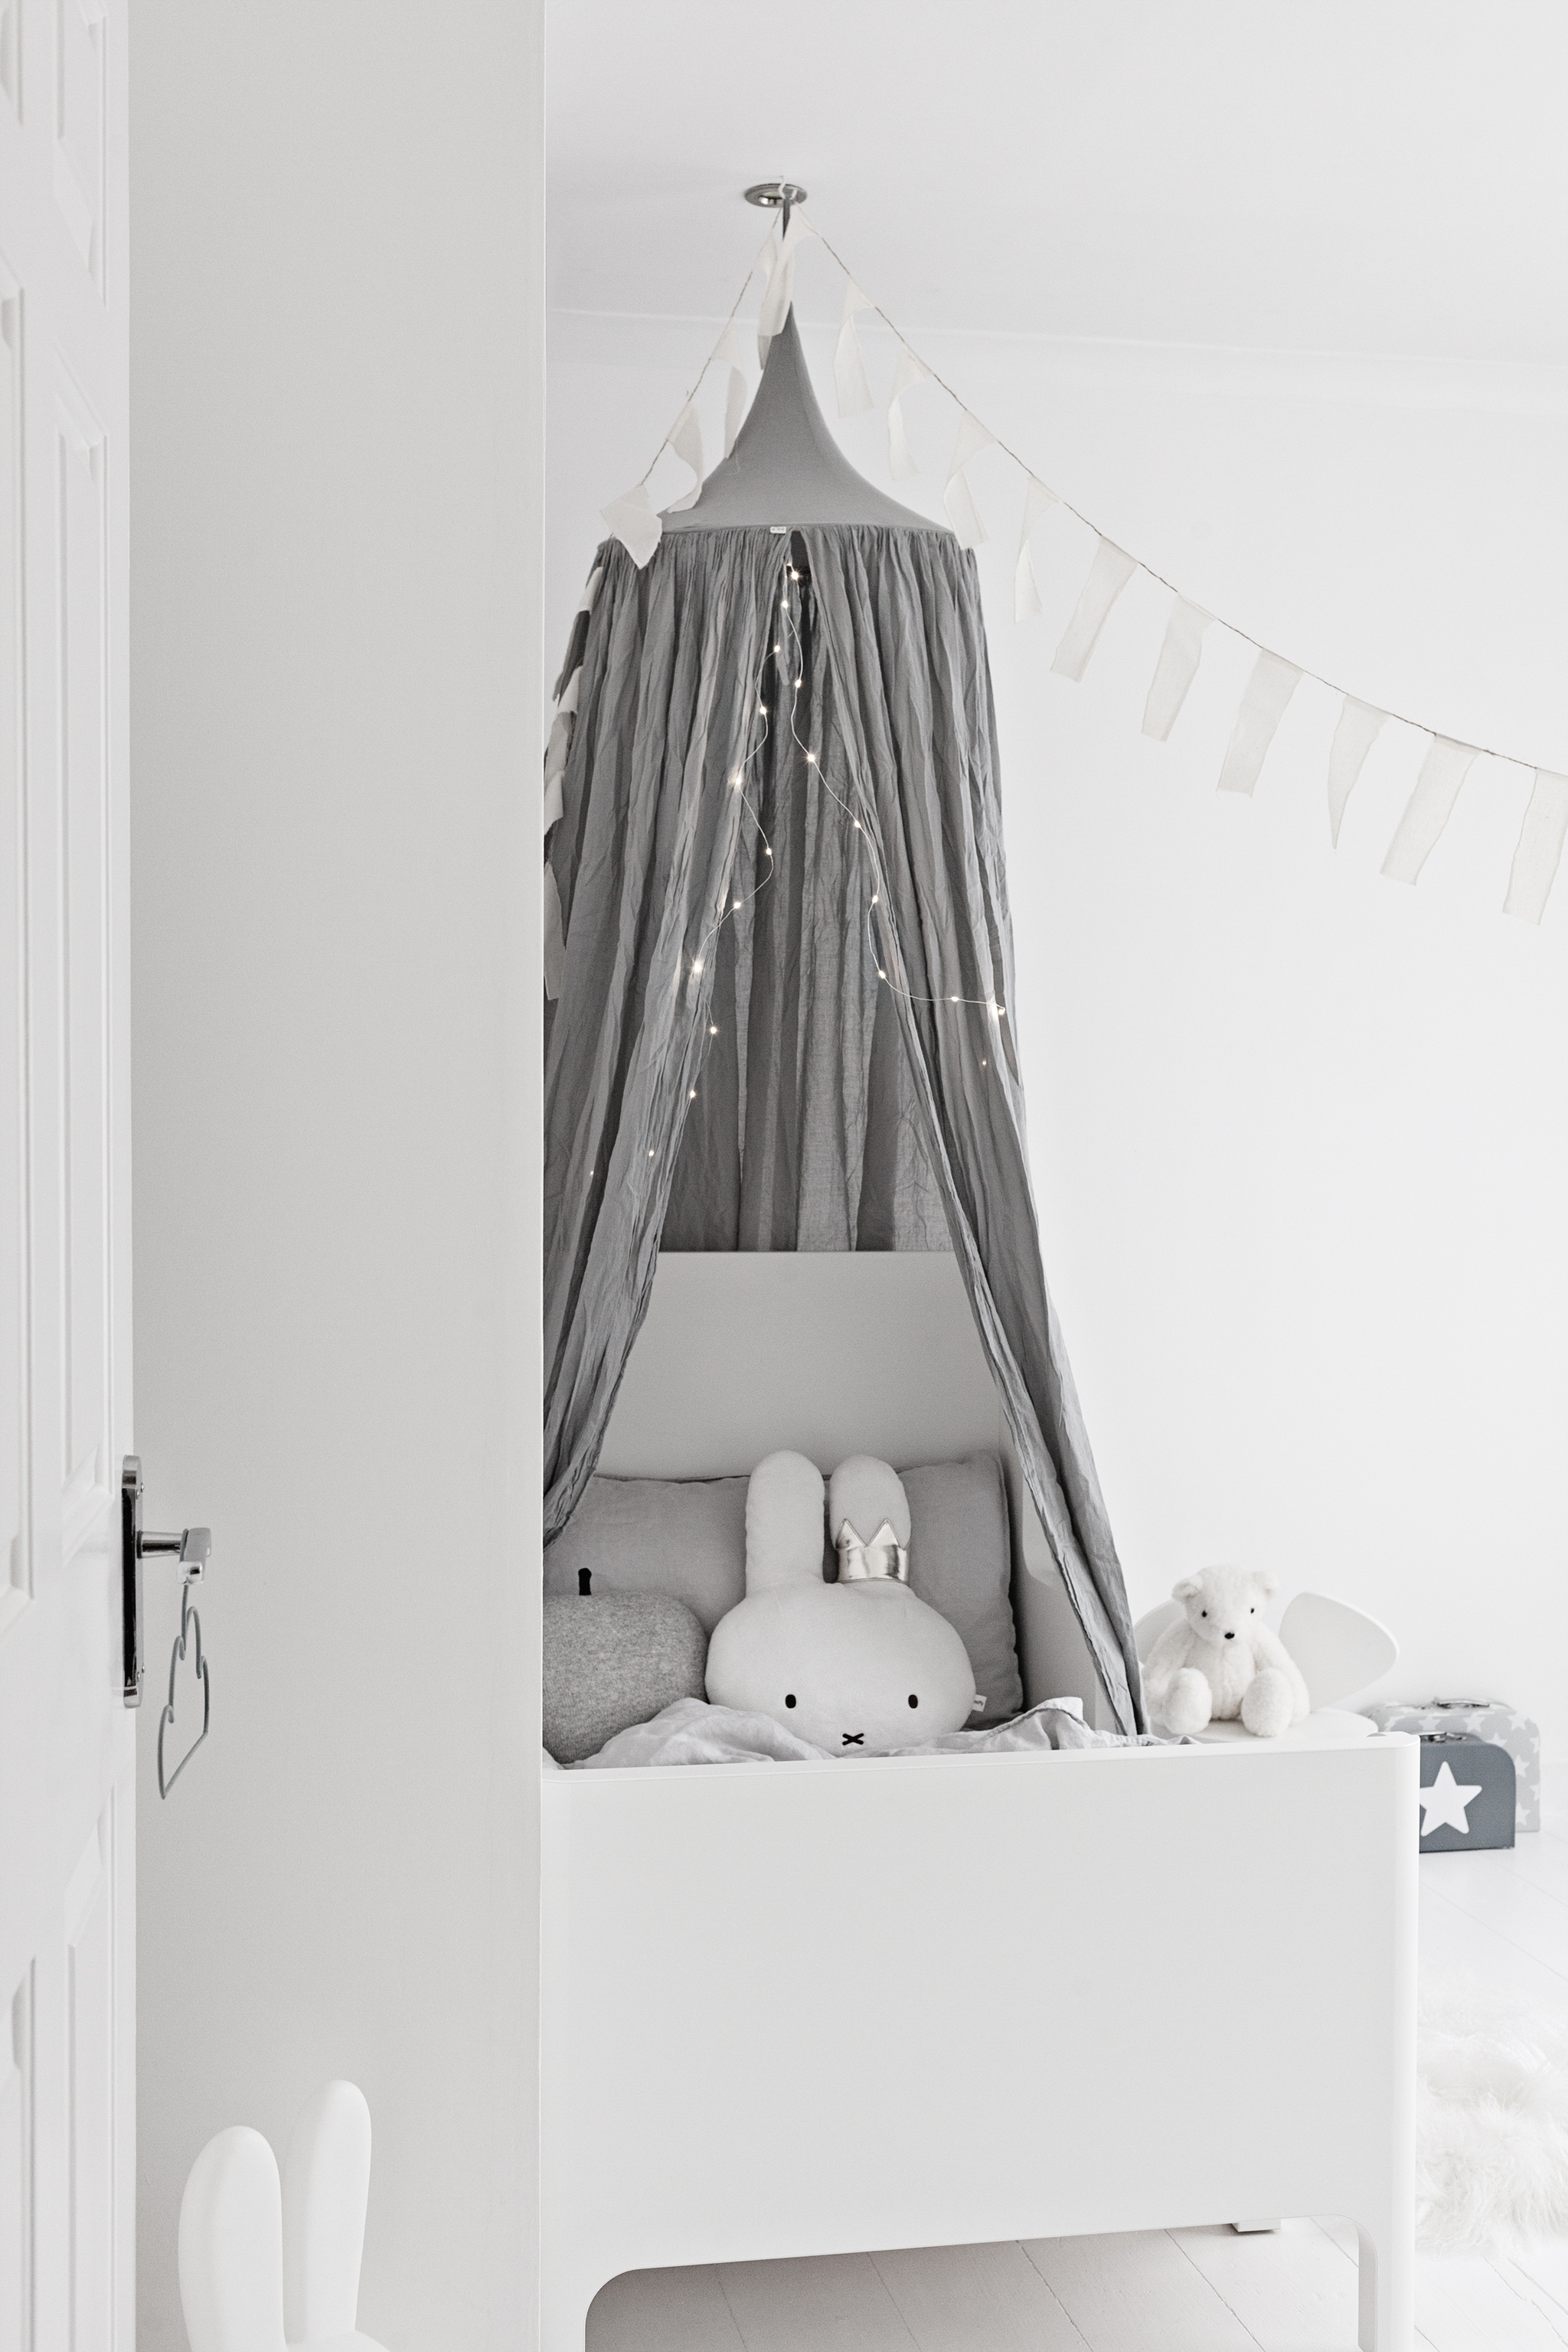 Grey Linen Canopy from Numero 74 | Grey Bed Linens from H&M | White Bear from The White Company | White Bed from Ikea | Bunting from Sukha Amsterdam